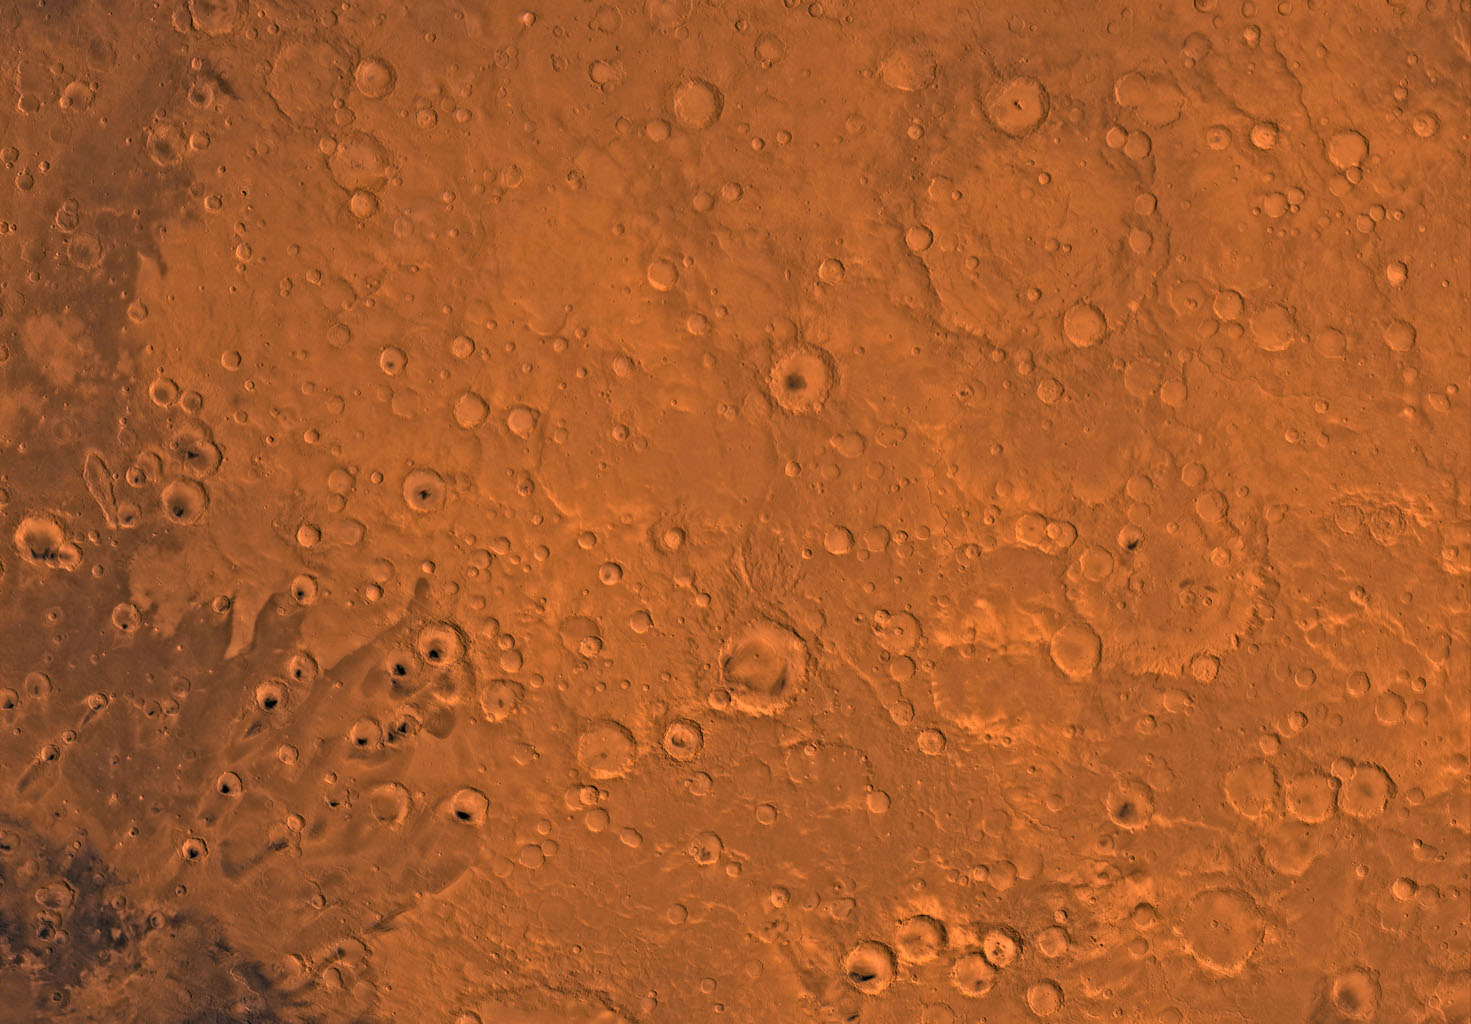 Mars digital-image mosaic merged with color of the MC-12 quadrangle, Arabia region of Mars. This image is from NASA's Viking Orbiter 1.